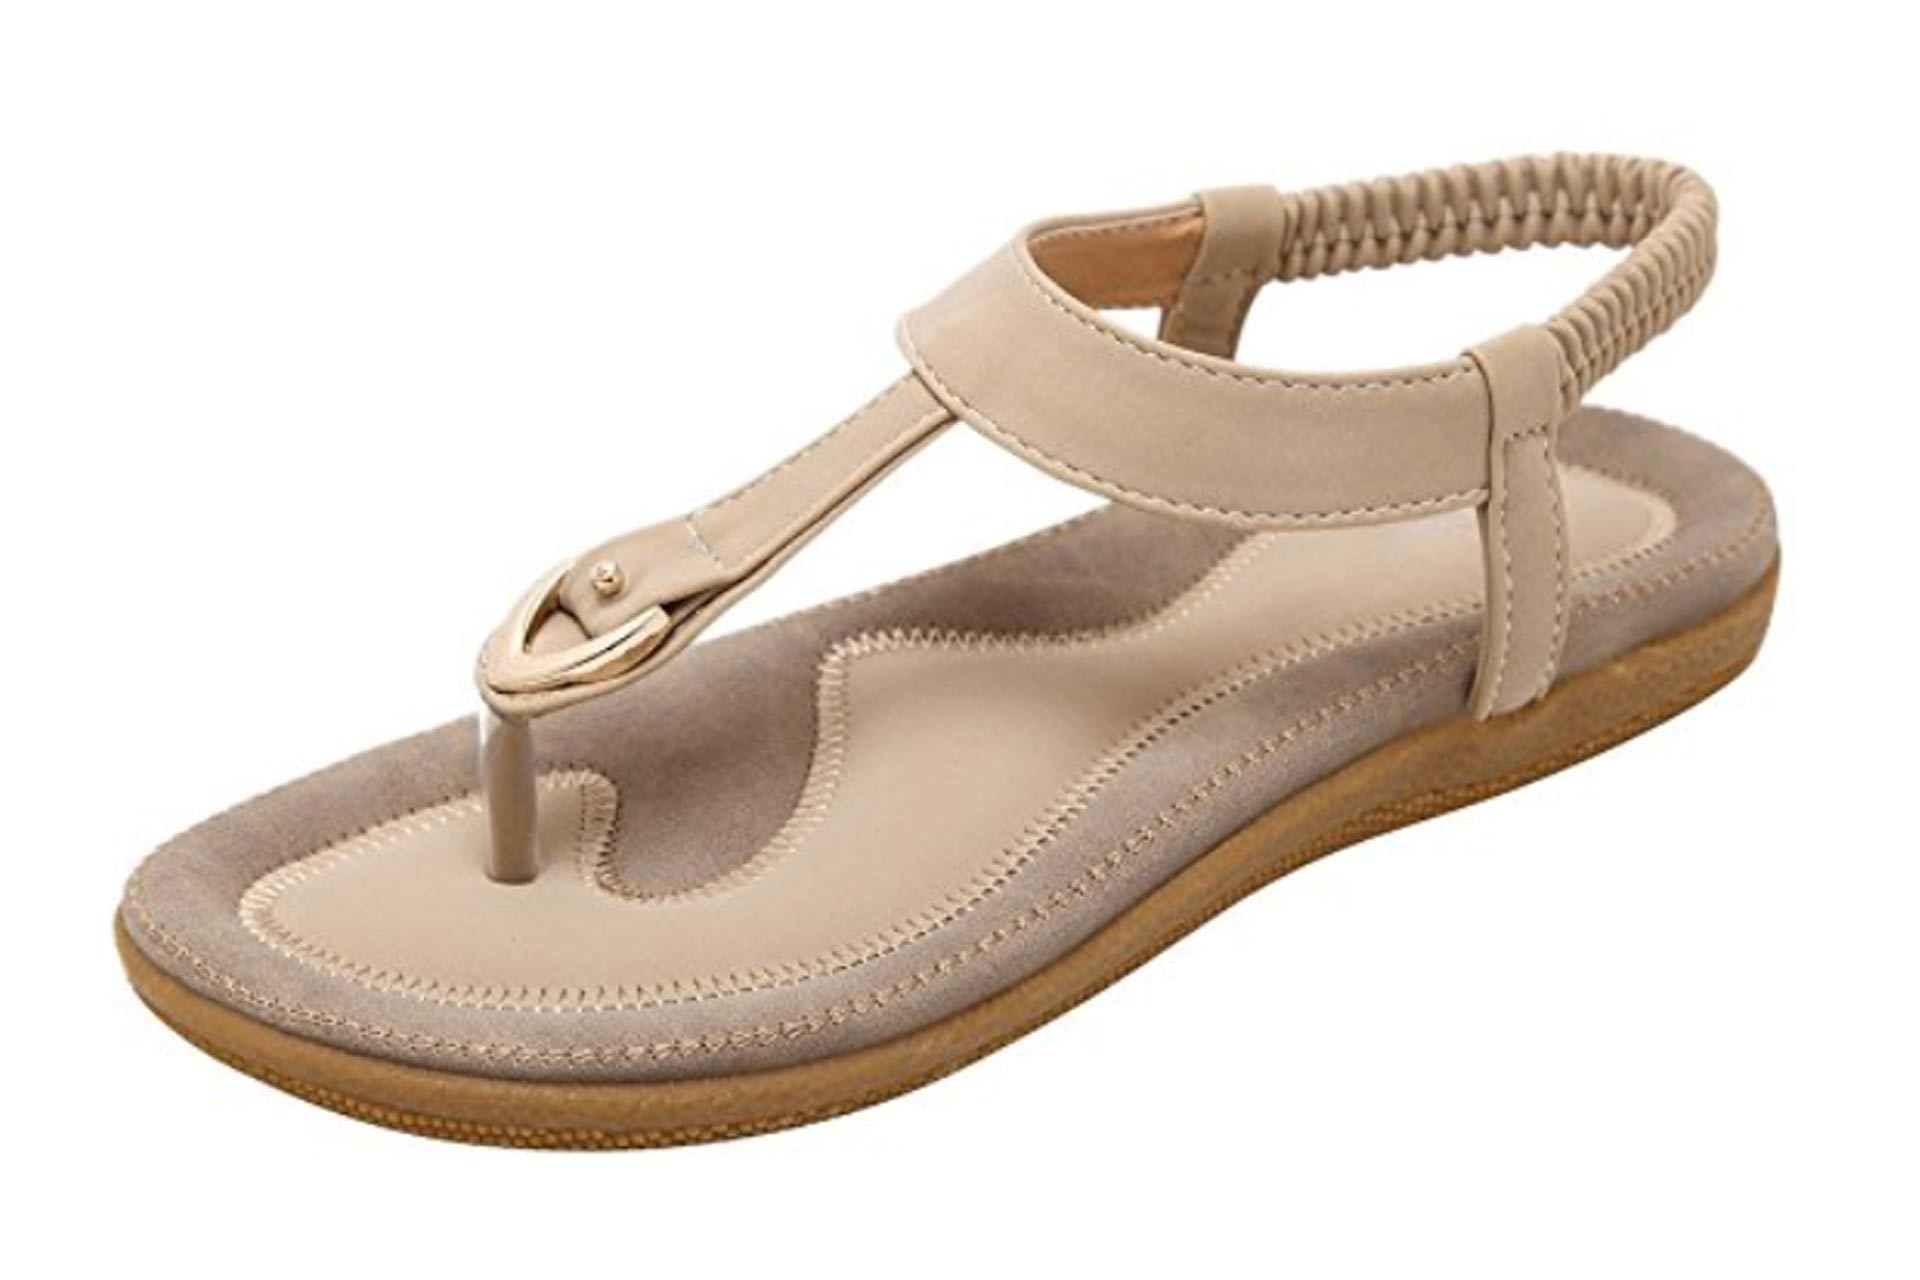 The Most Comfortable Women's Sandals for Family Vacations